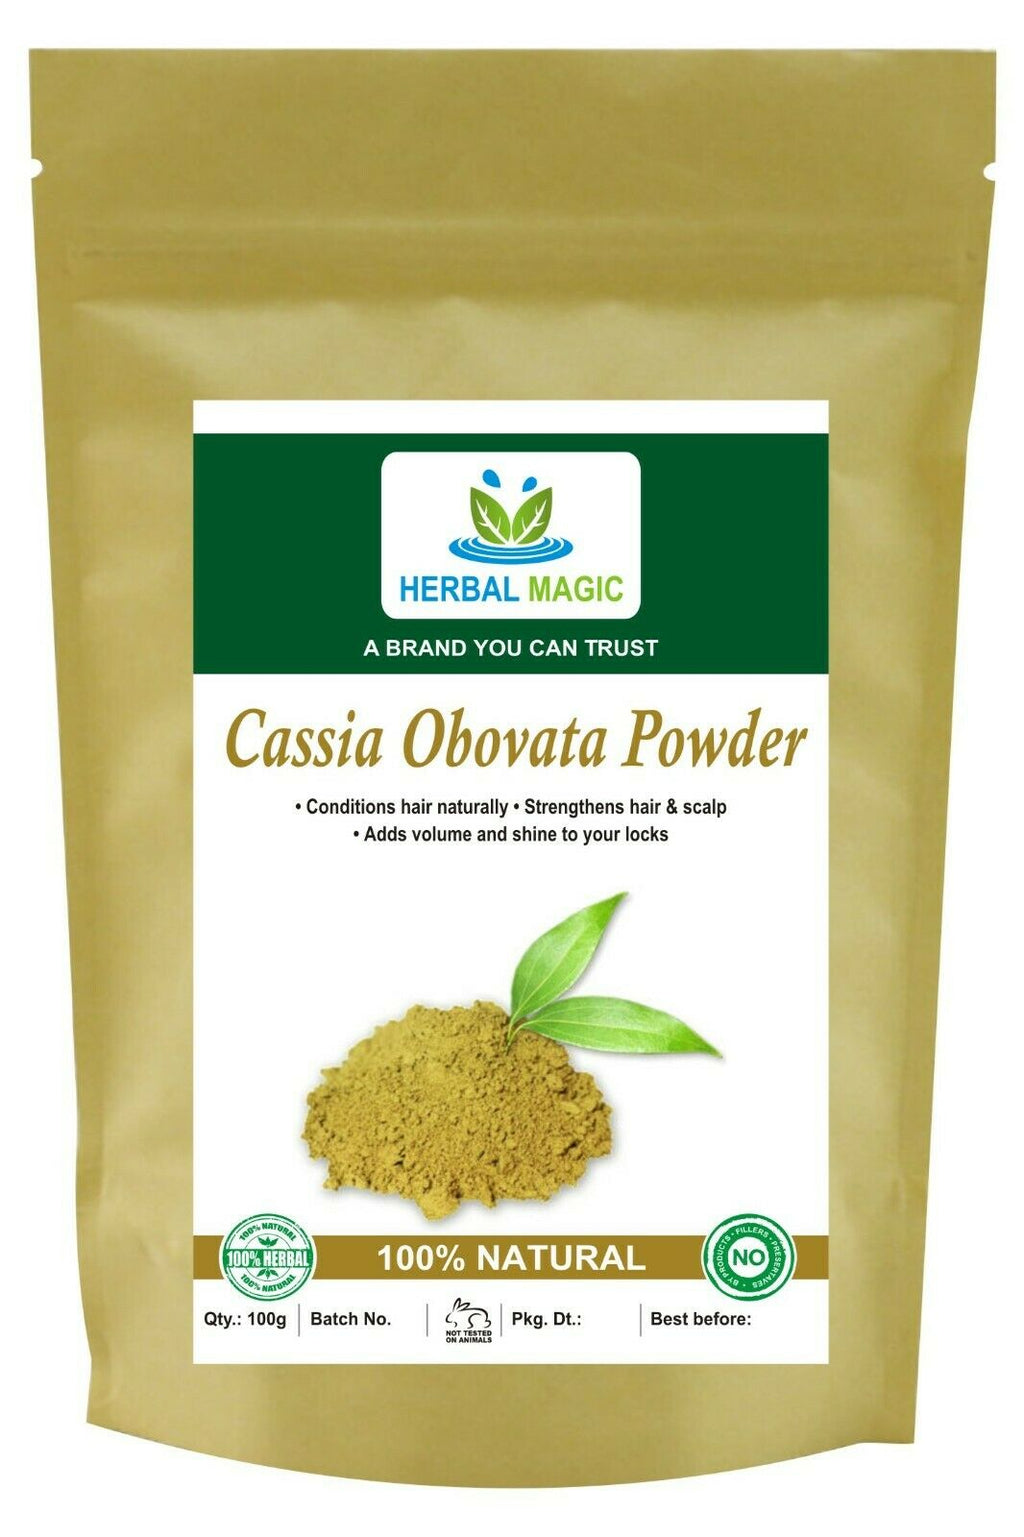 200g Organic Cassia Obovata Powder Senna Leaves Neutral Henna Premium QualityListed for charity